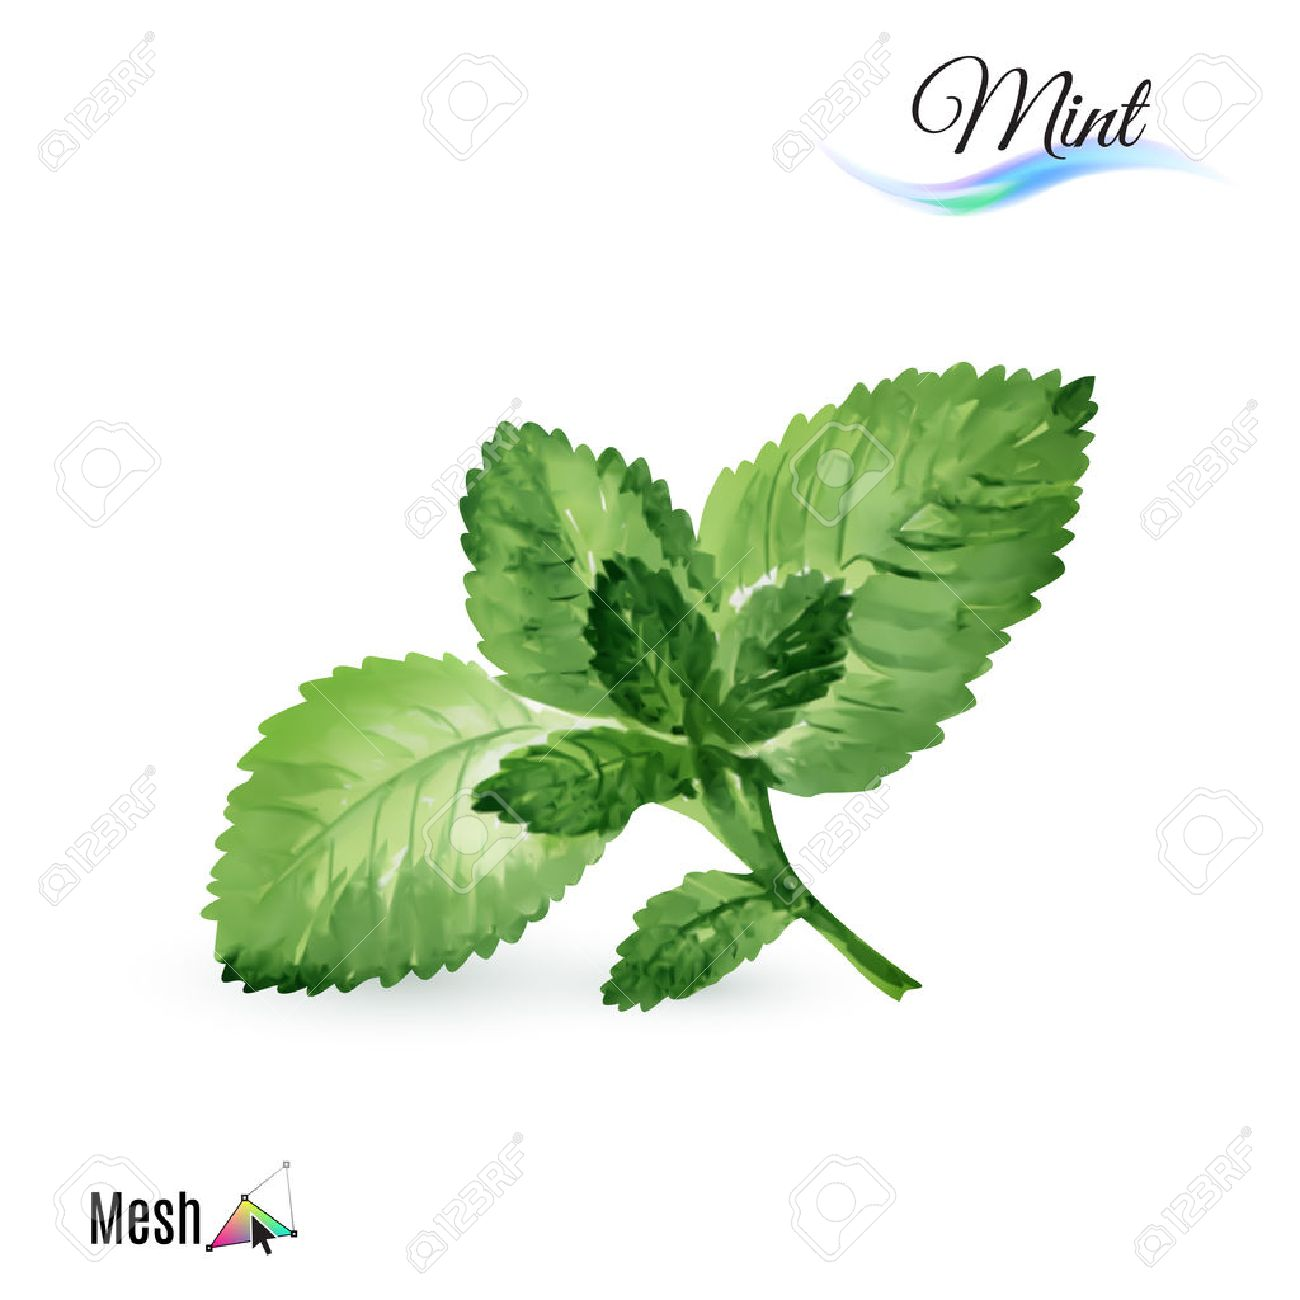 Watercolor mint plant isolated in white background Stock Vector - 48126147